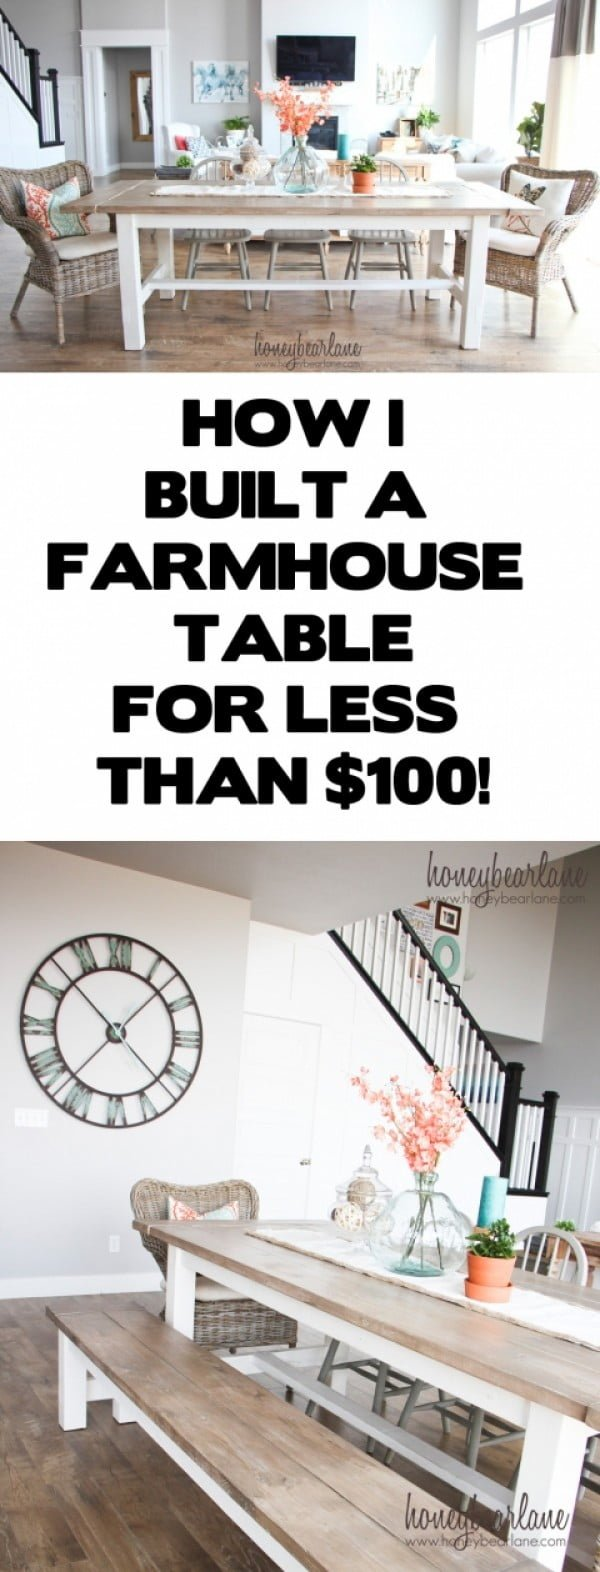 Check out the tutorial how to build a DIY farmhouse table for under $100